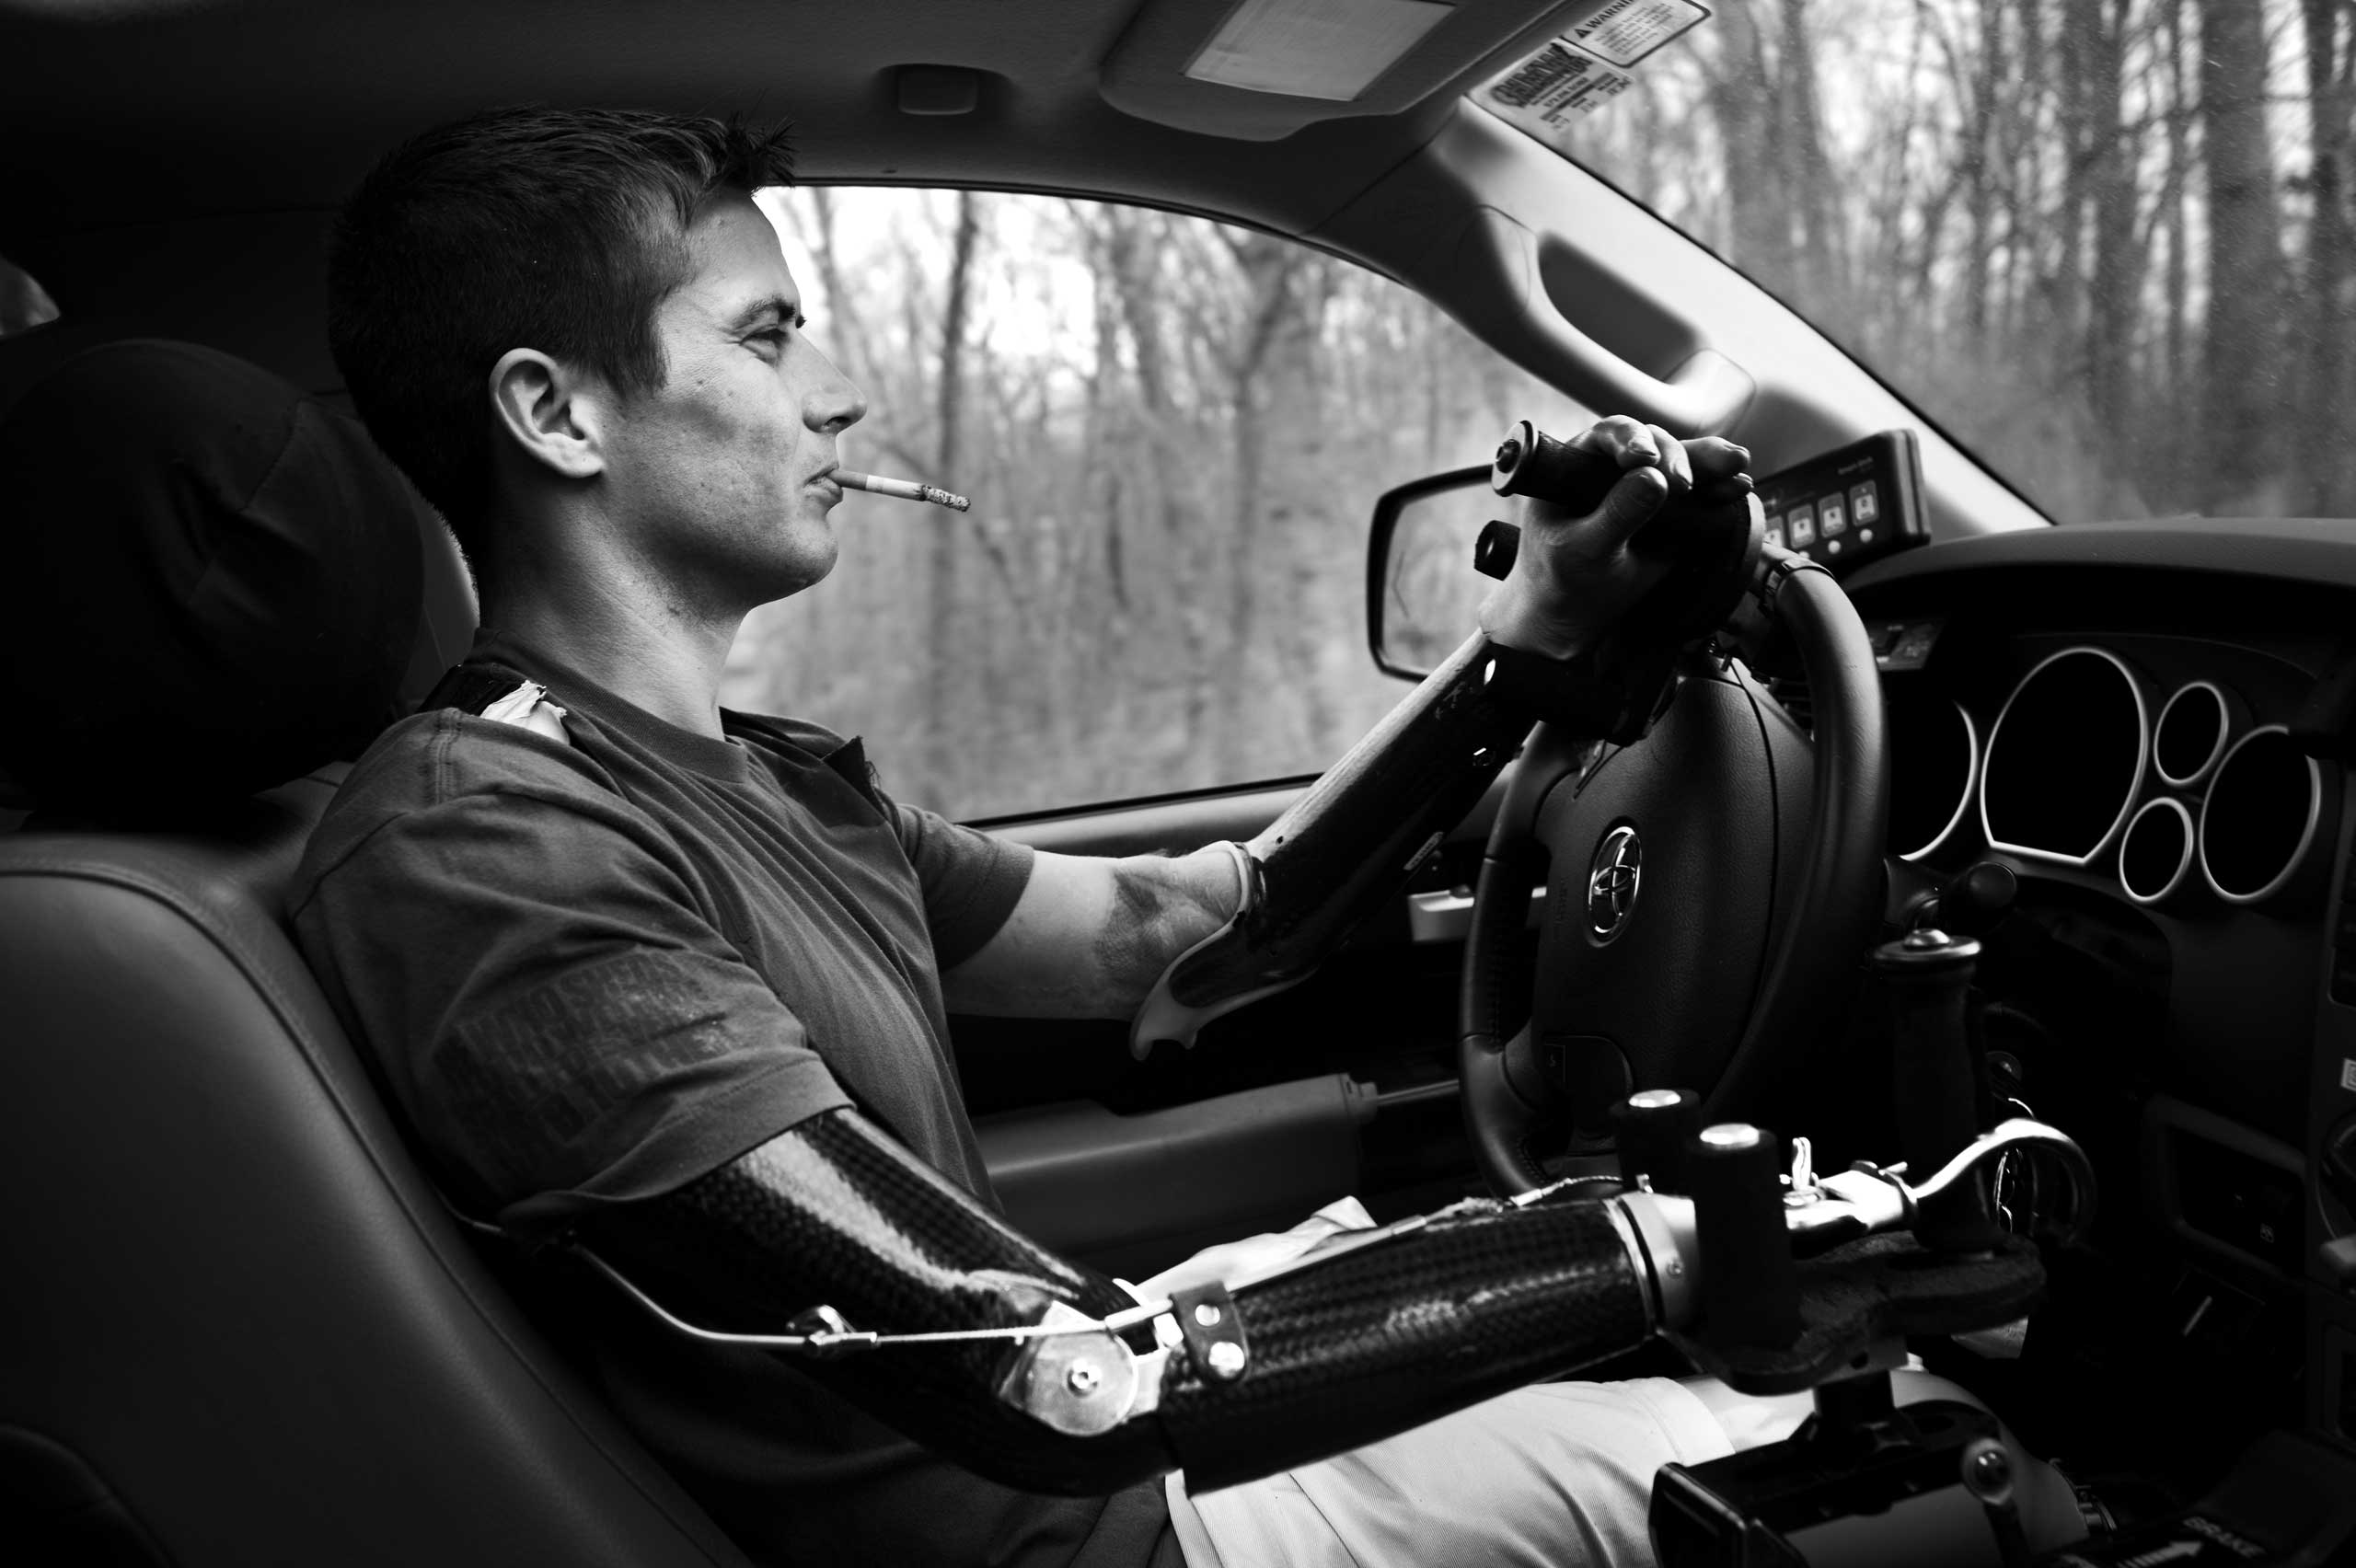 Cpl. Nicely driving his car, a custom-made pick-up adapted to be driven with his prosthesis. Lake Ozark, Miss., 2014.